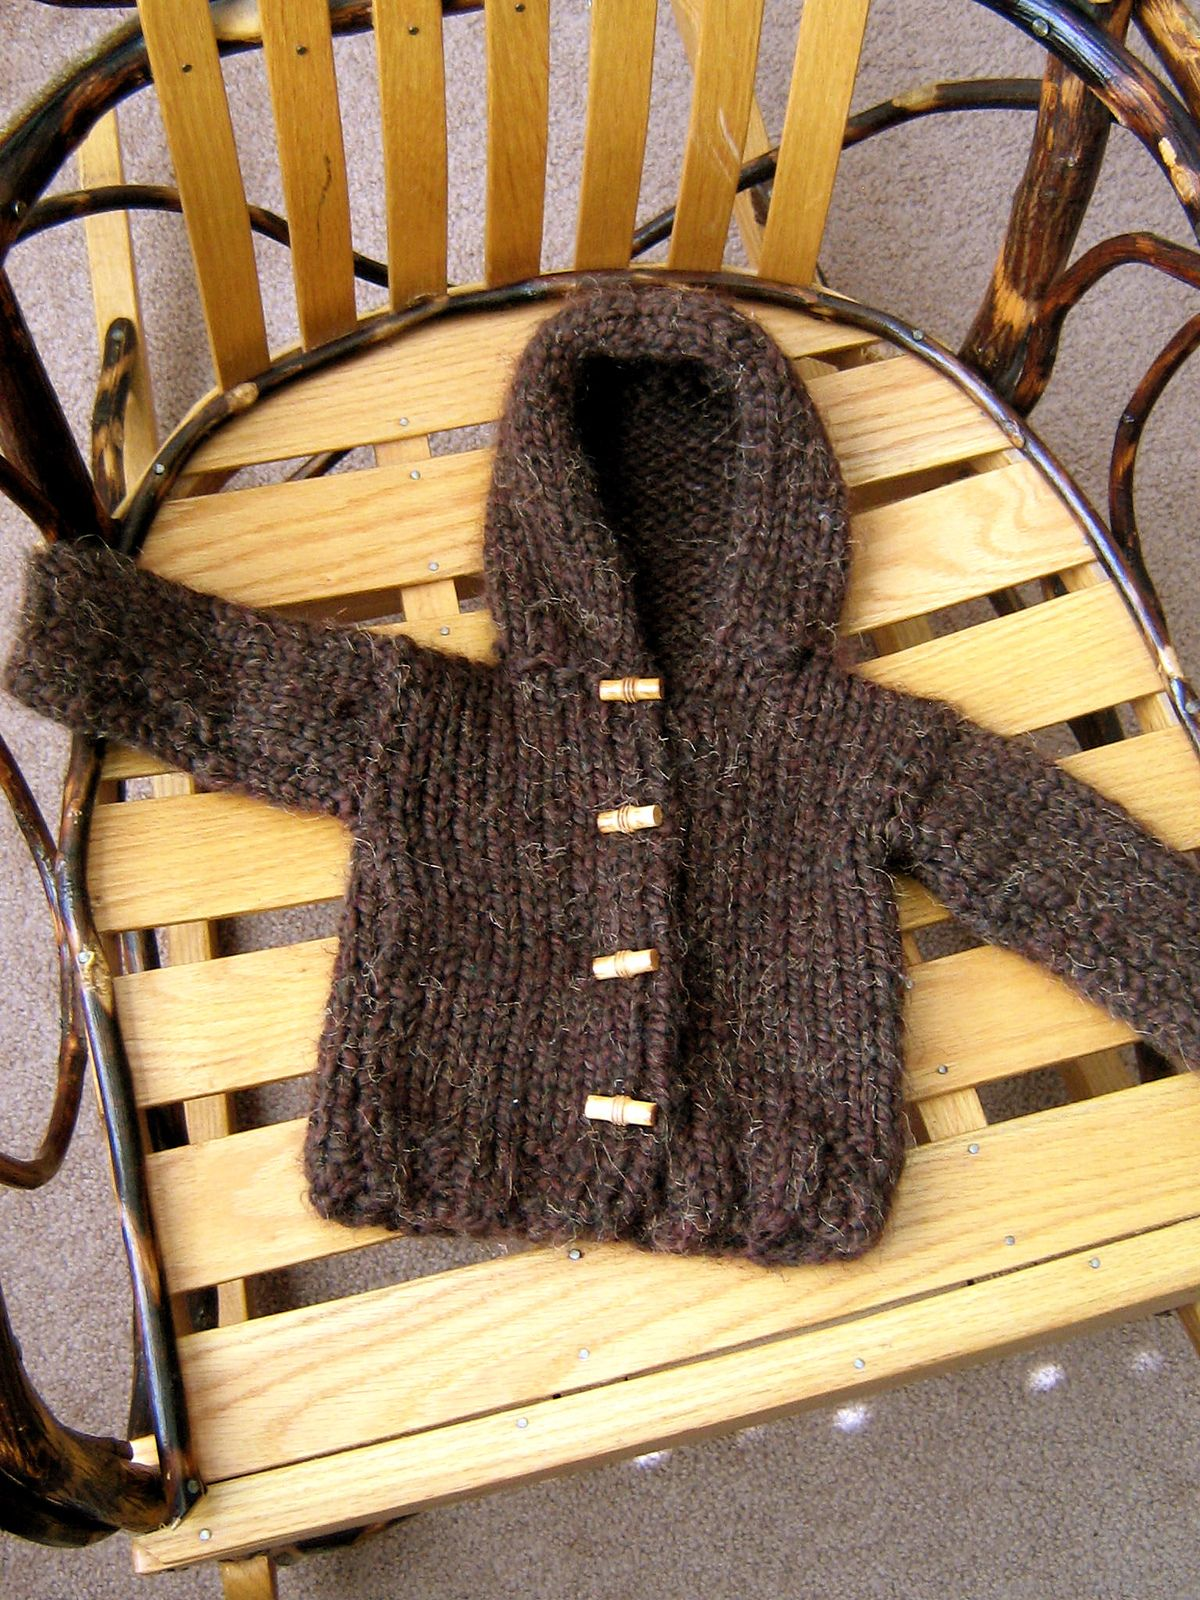 20b9a6729a0d Comfy Hooded Jacket pattern by Lion Brand Yarn